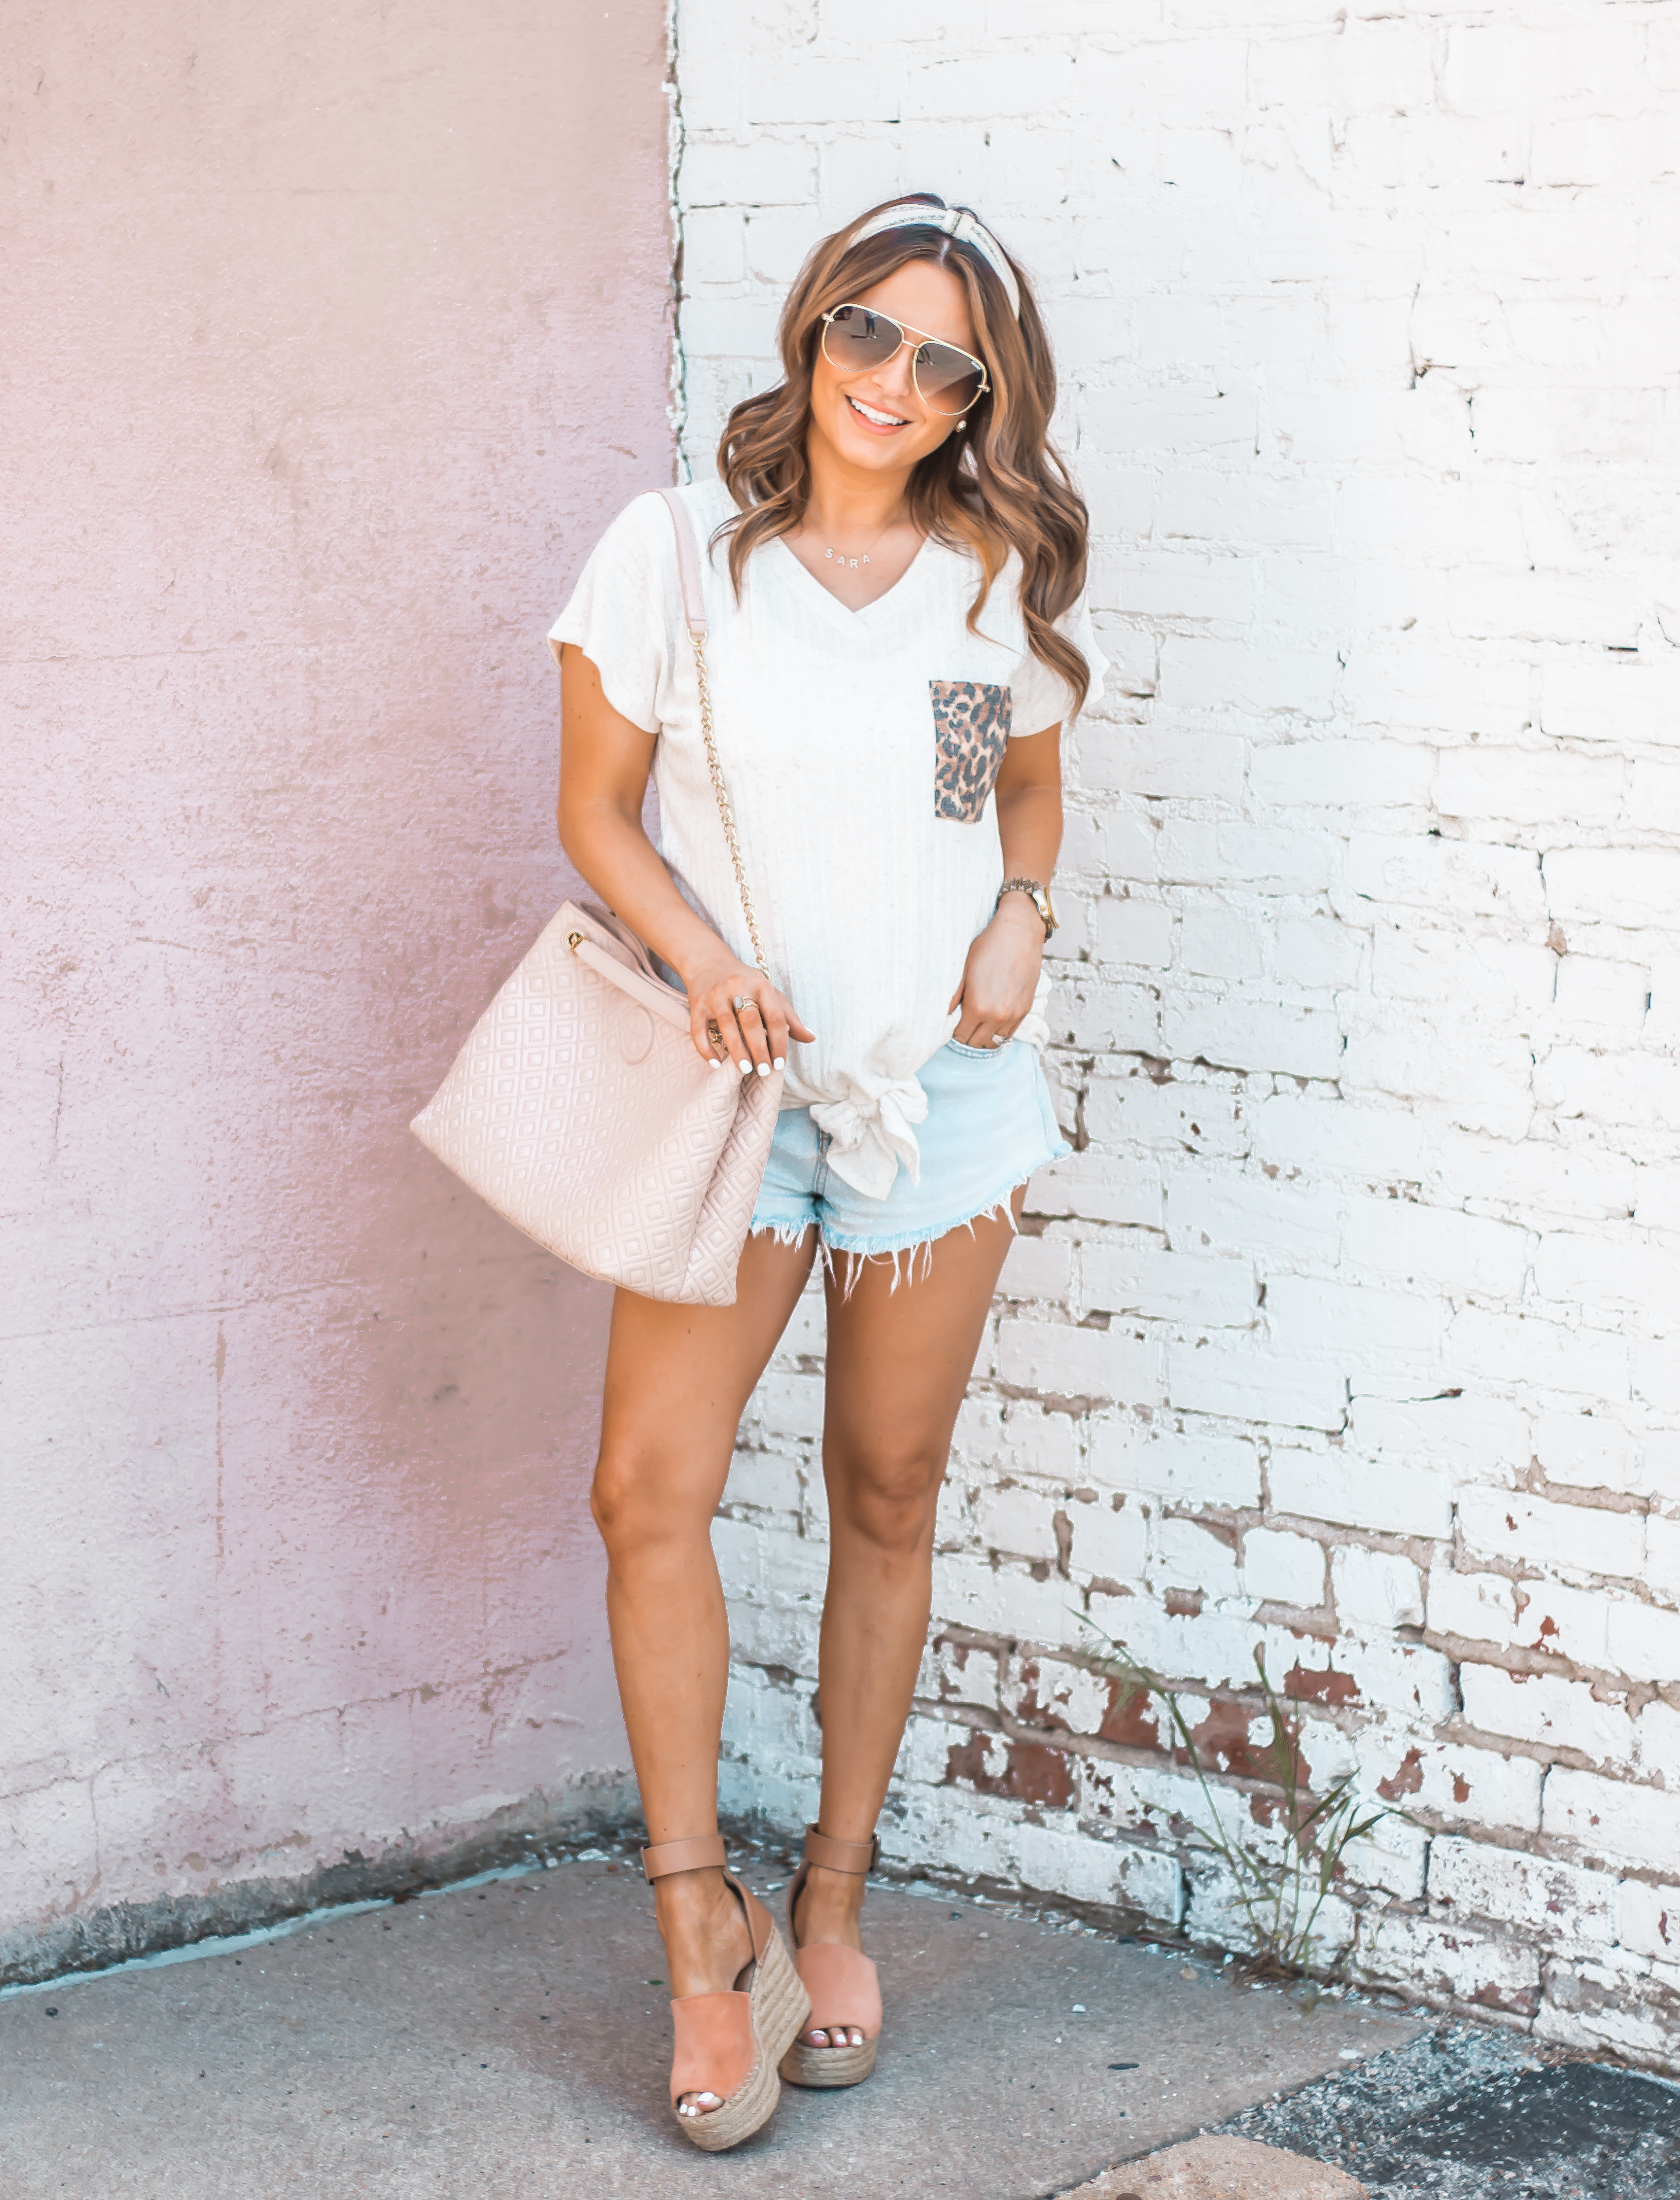 Women's Fashion-Summer Fashion-Summer Outfit Inspiration-Sabby Style-Omaha Blogger-Leopard Pocket Top-The Style Bar Boutique-Cutoff Shorts-Espadrille Wedges-Marc Fisher Wedges-Tory Burch Fleming-Quay Sunglasses-Headband Trend-Omaha-Nebraska-Midwest Blogger-5